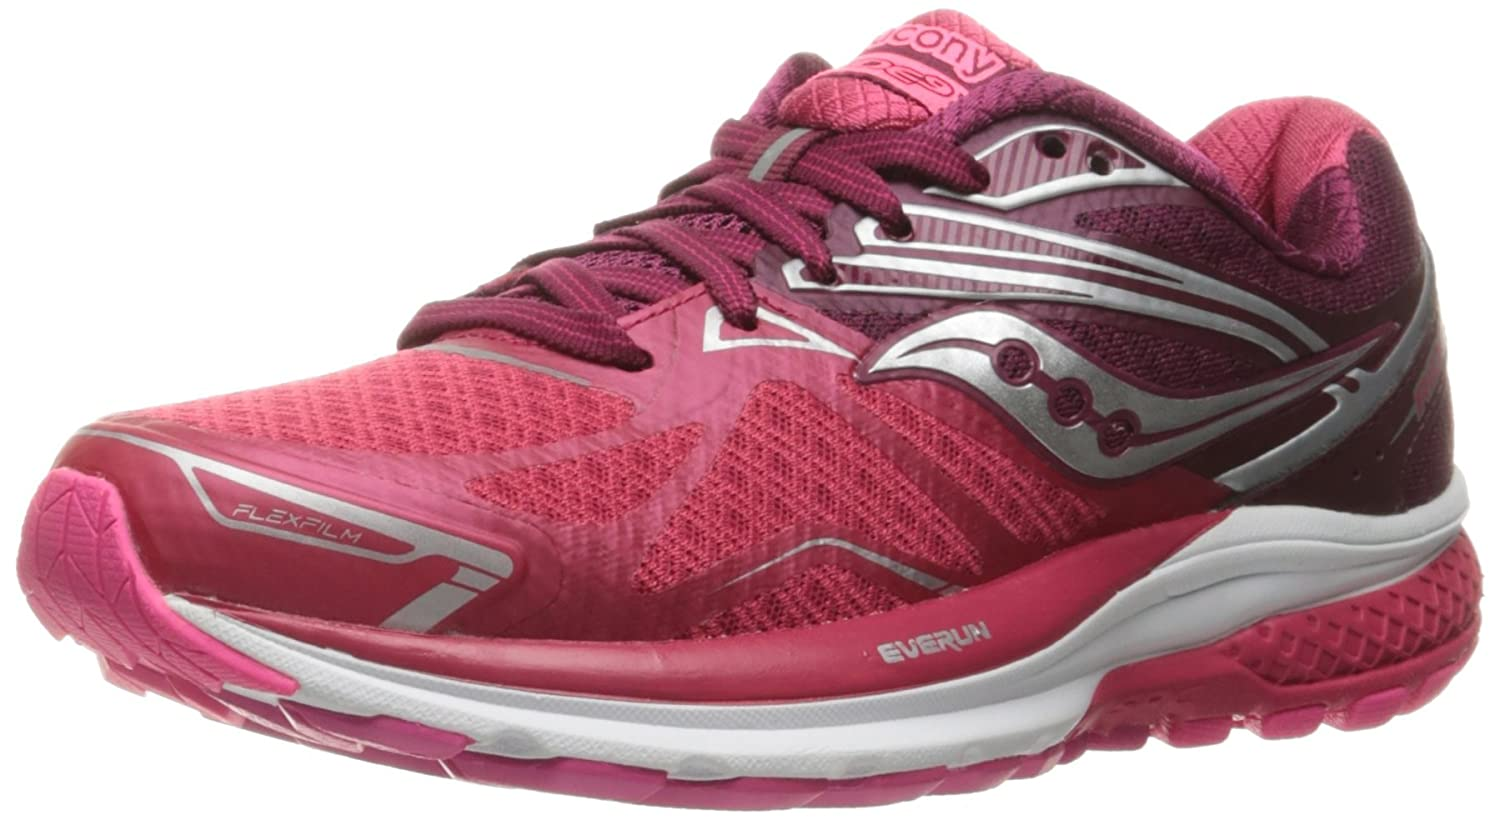 Saucony Women's Ride 9 Running Shoe B01GIPXXAY 9.5 B(M) US|Pink/Berry